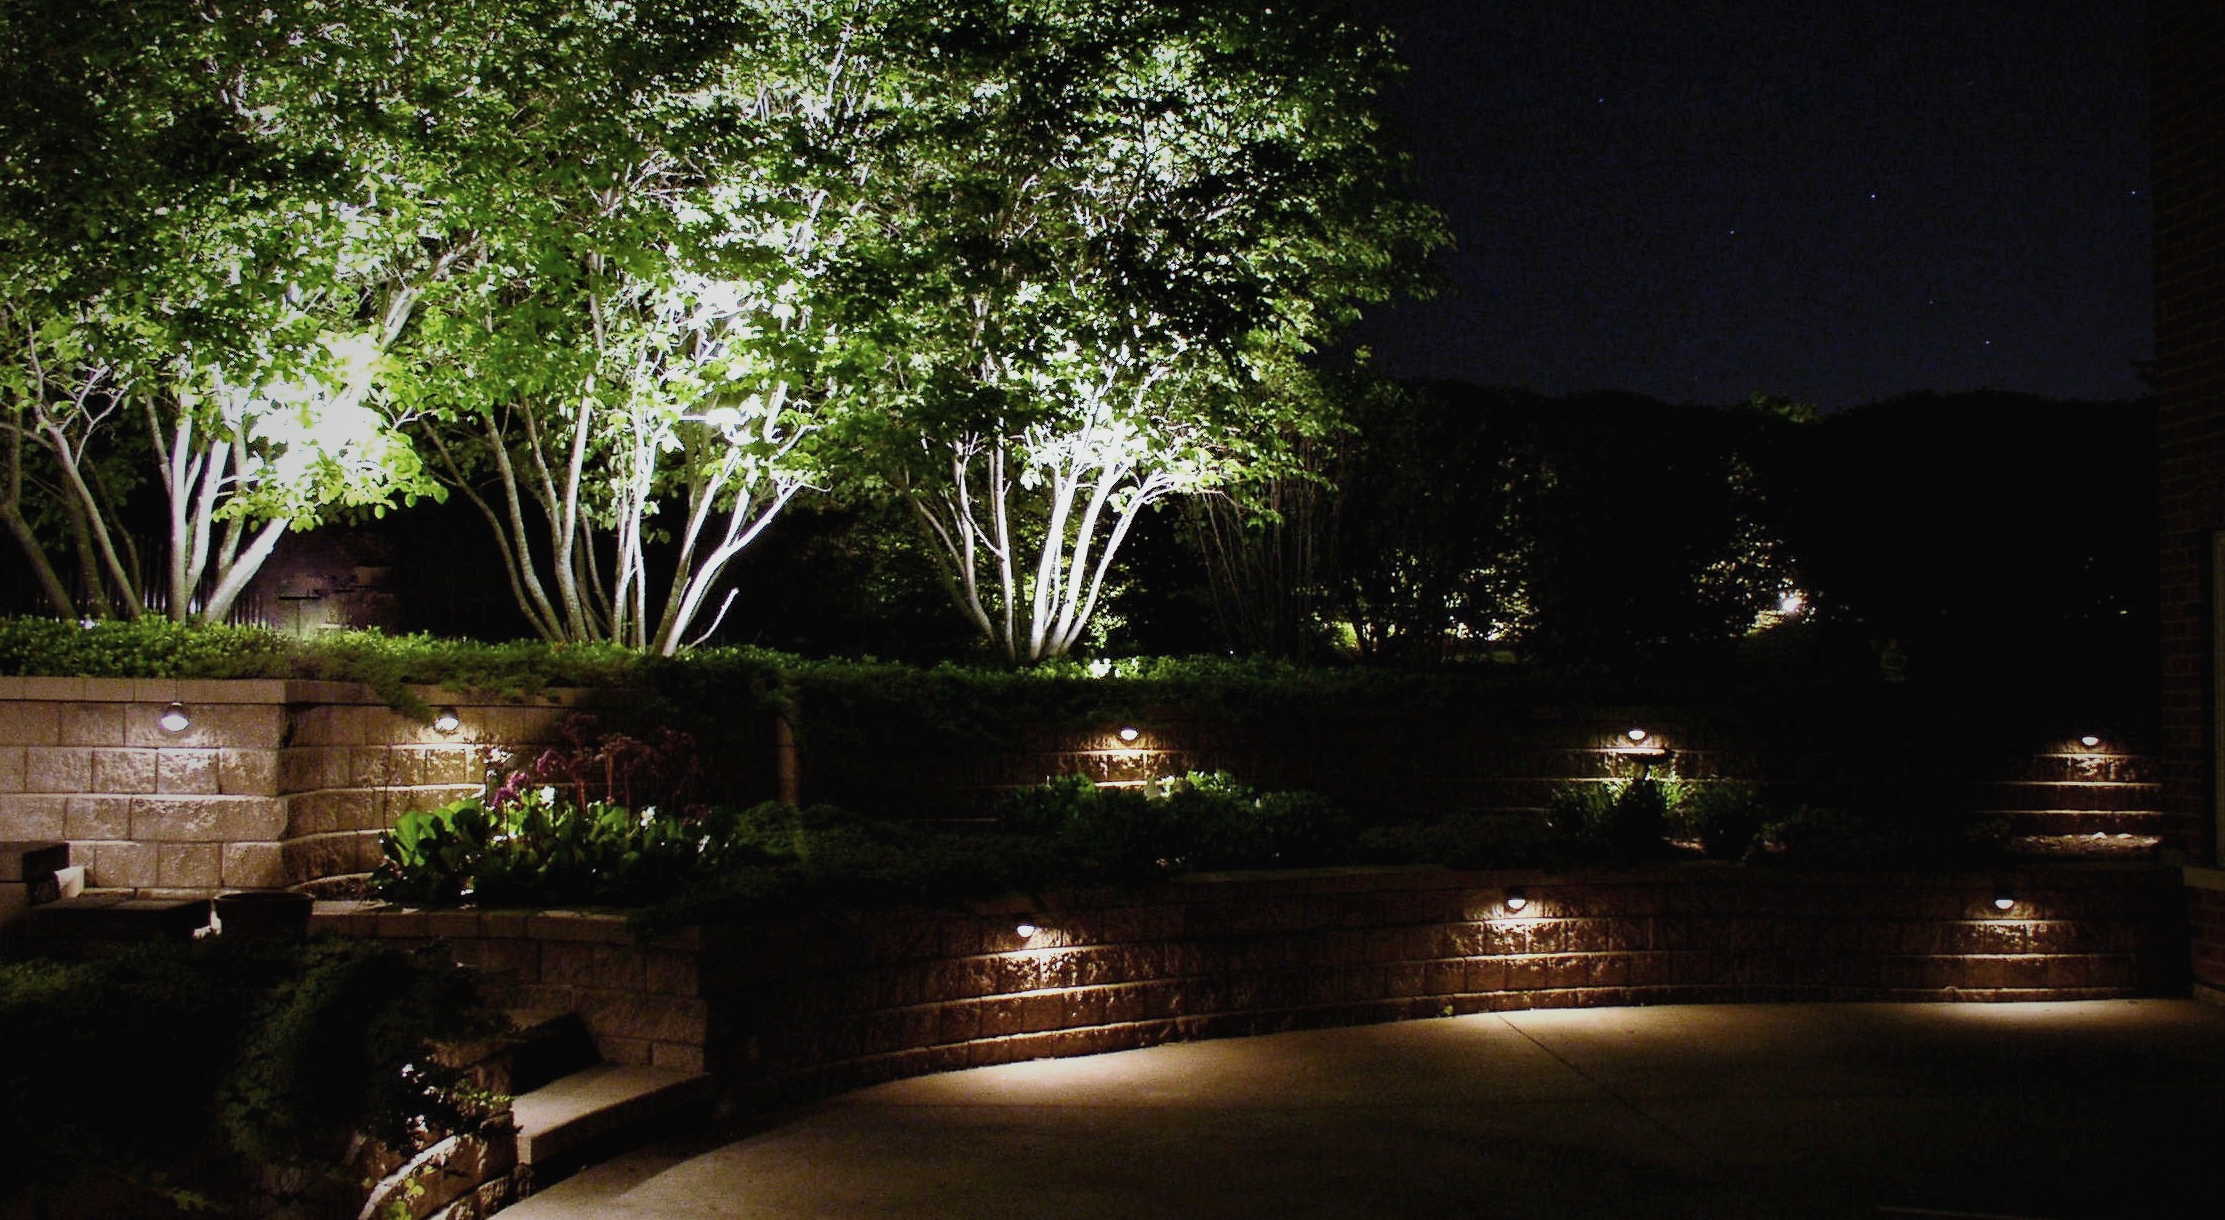 patio landscape lighting by The Illuminators in St. Charles Illinois